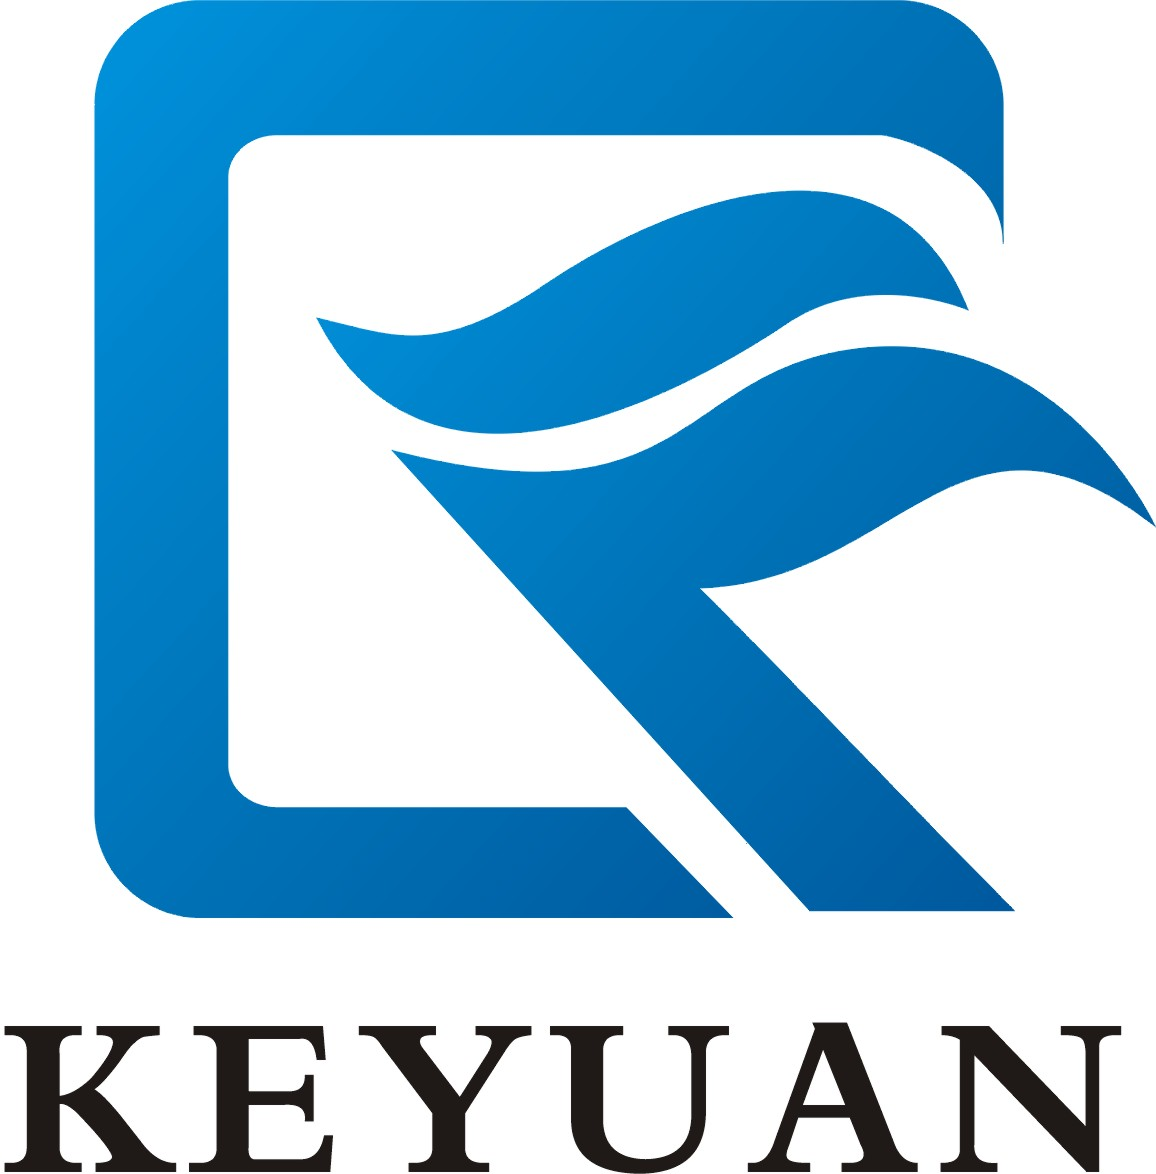 CANGZHOU CITY KEYUAN HARDWARE AND MACHINERY CO., LTD.